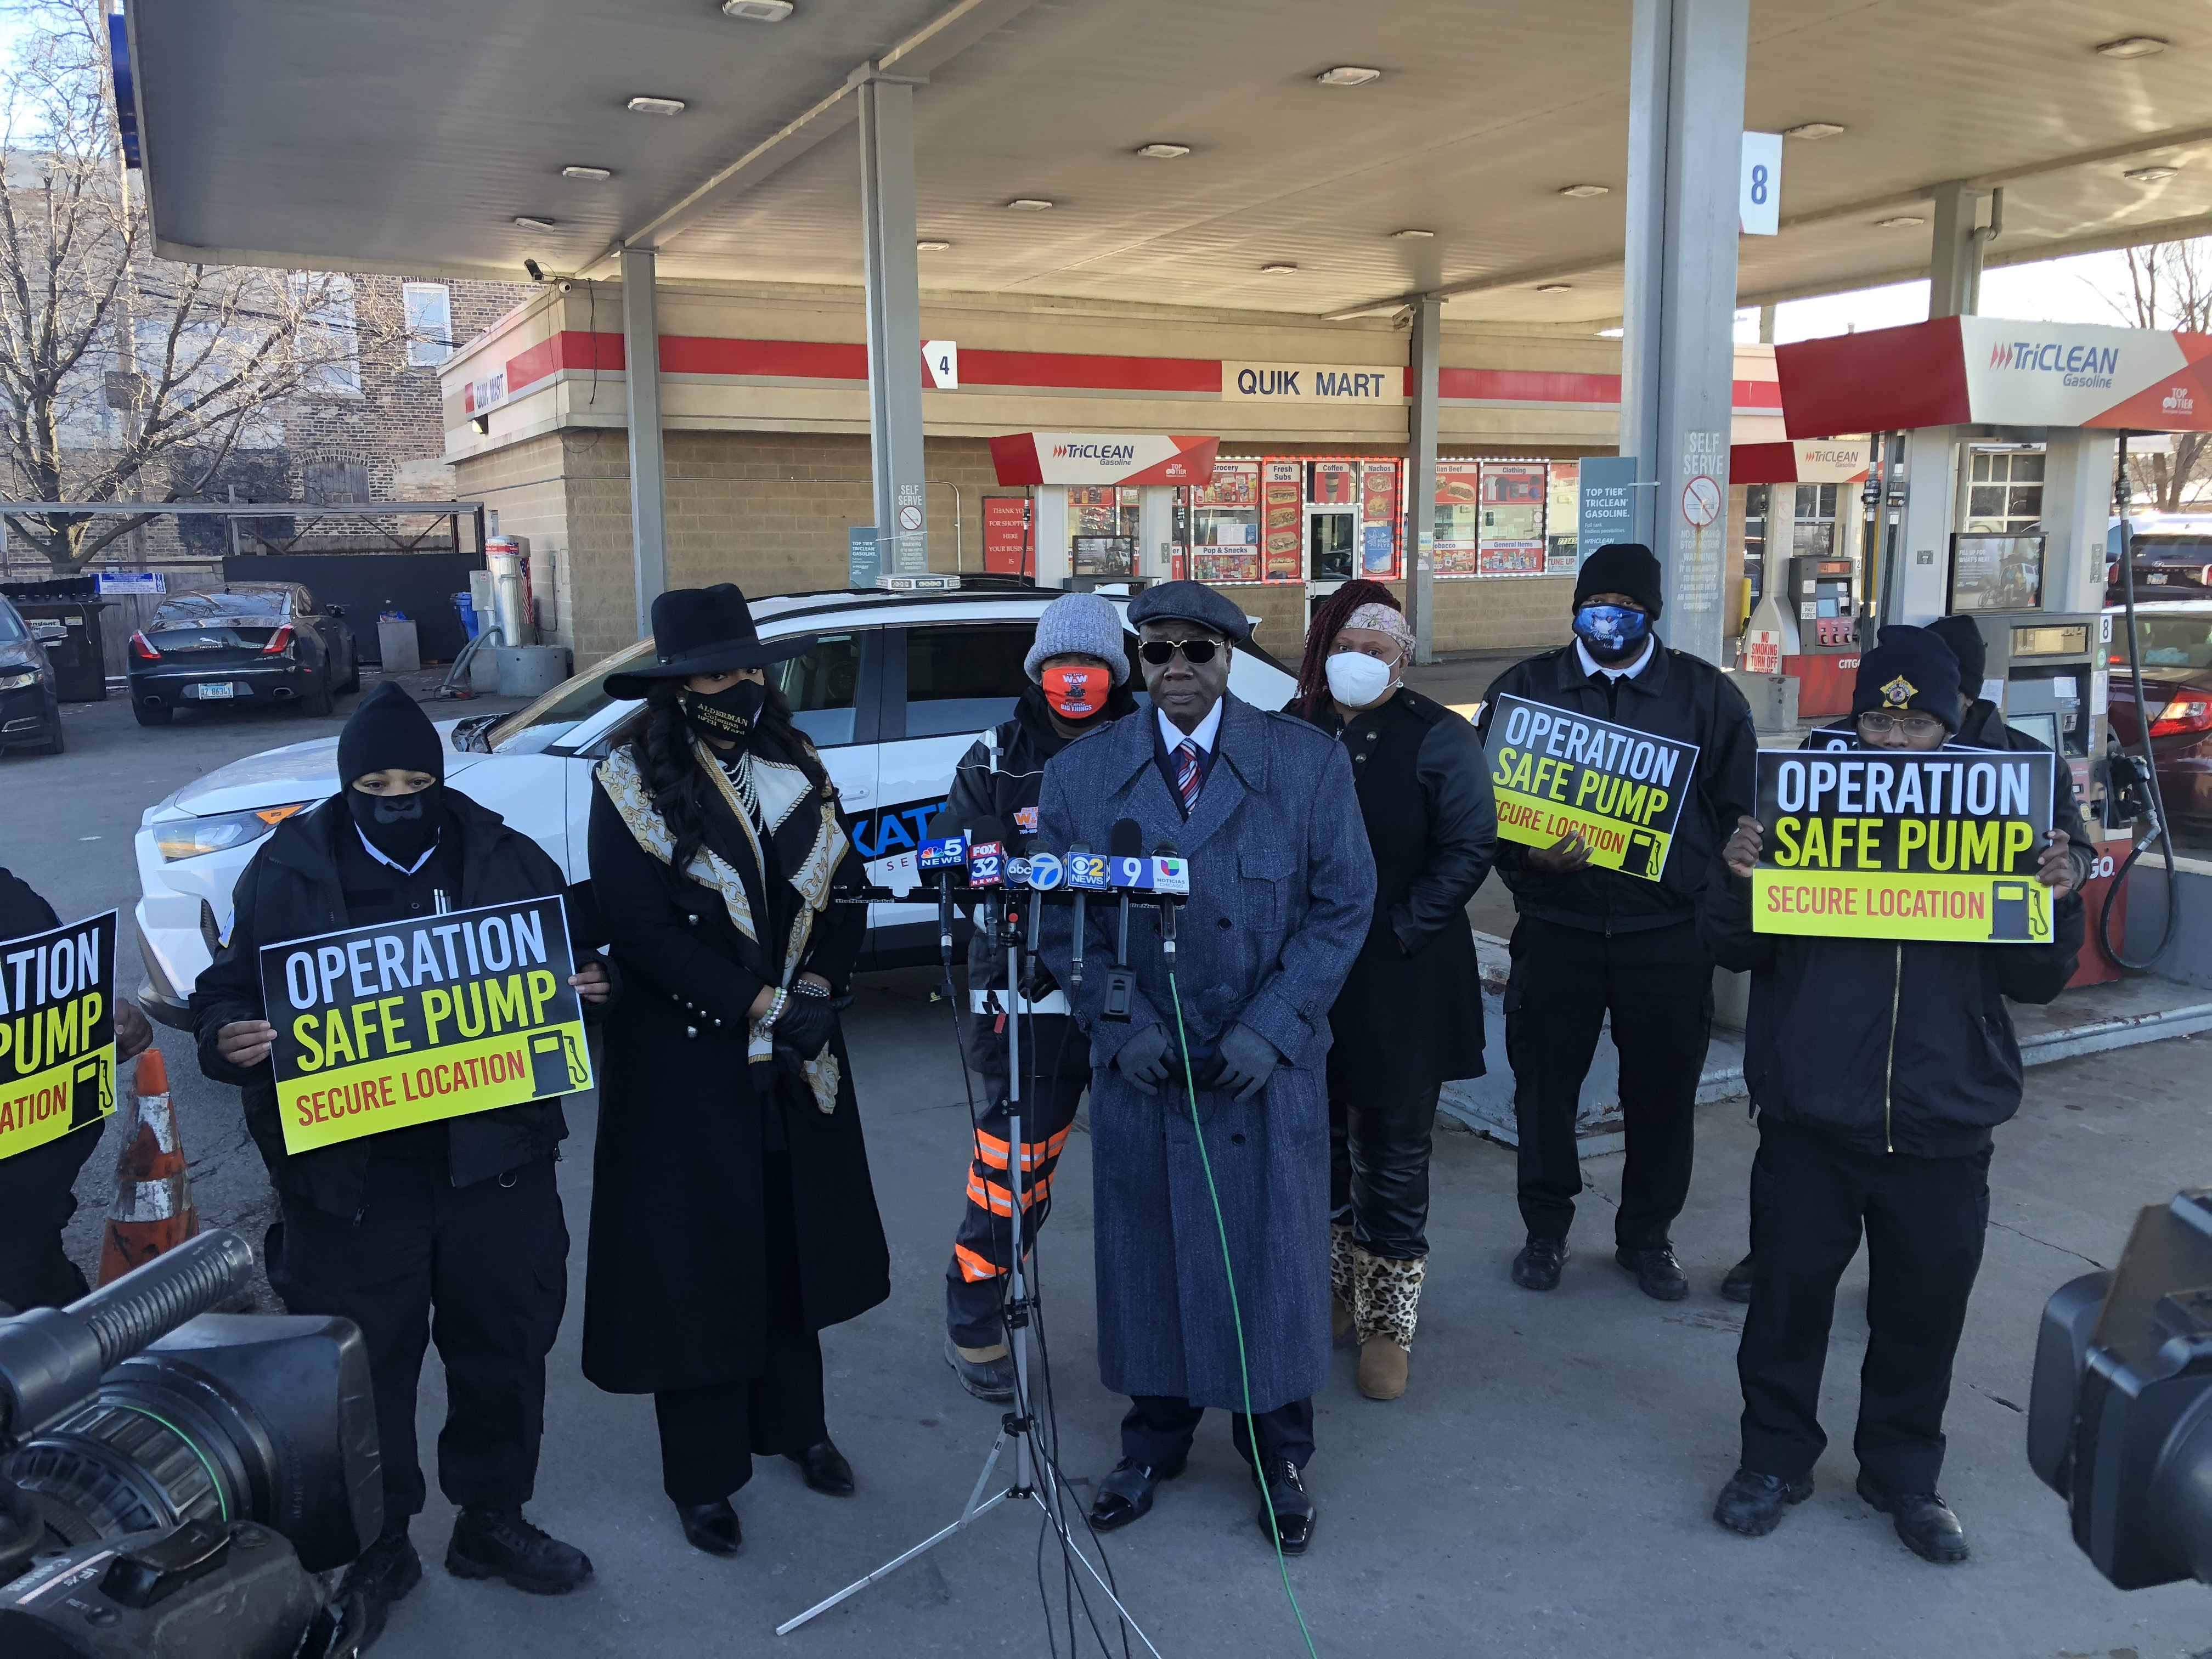 Kates Detective and Security Agency CEO William Kates (center) speaks at a news conference Friday with supporters, including Ald. Stephanie Coleman, left.